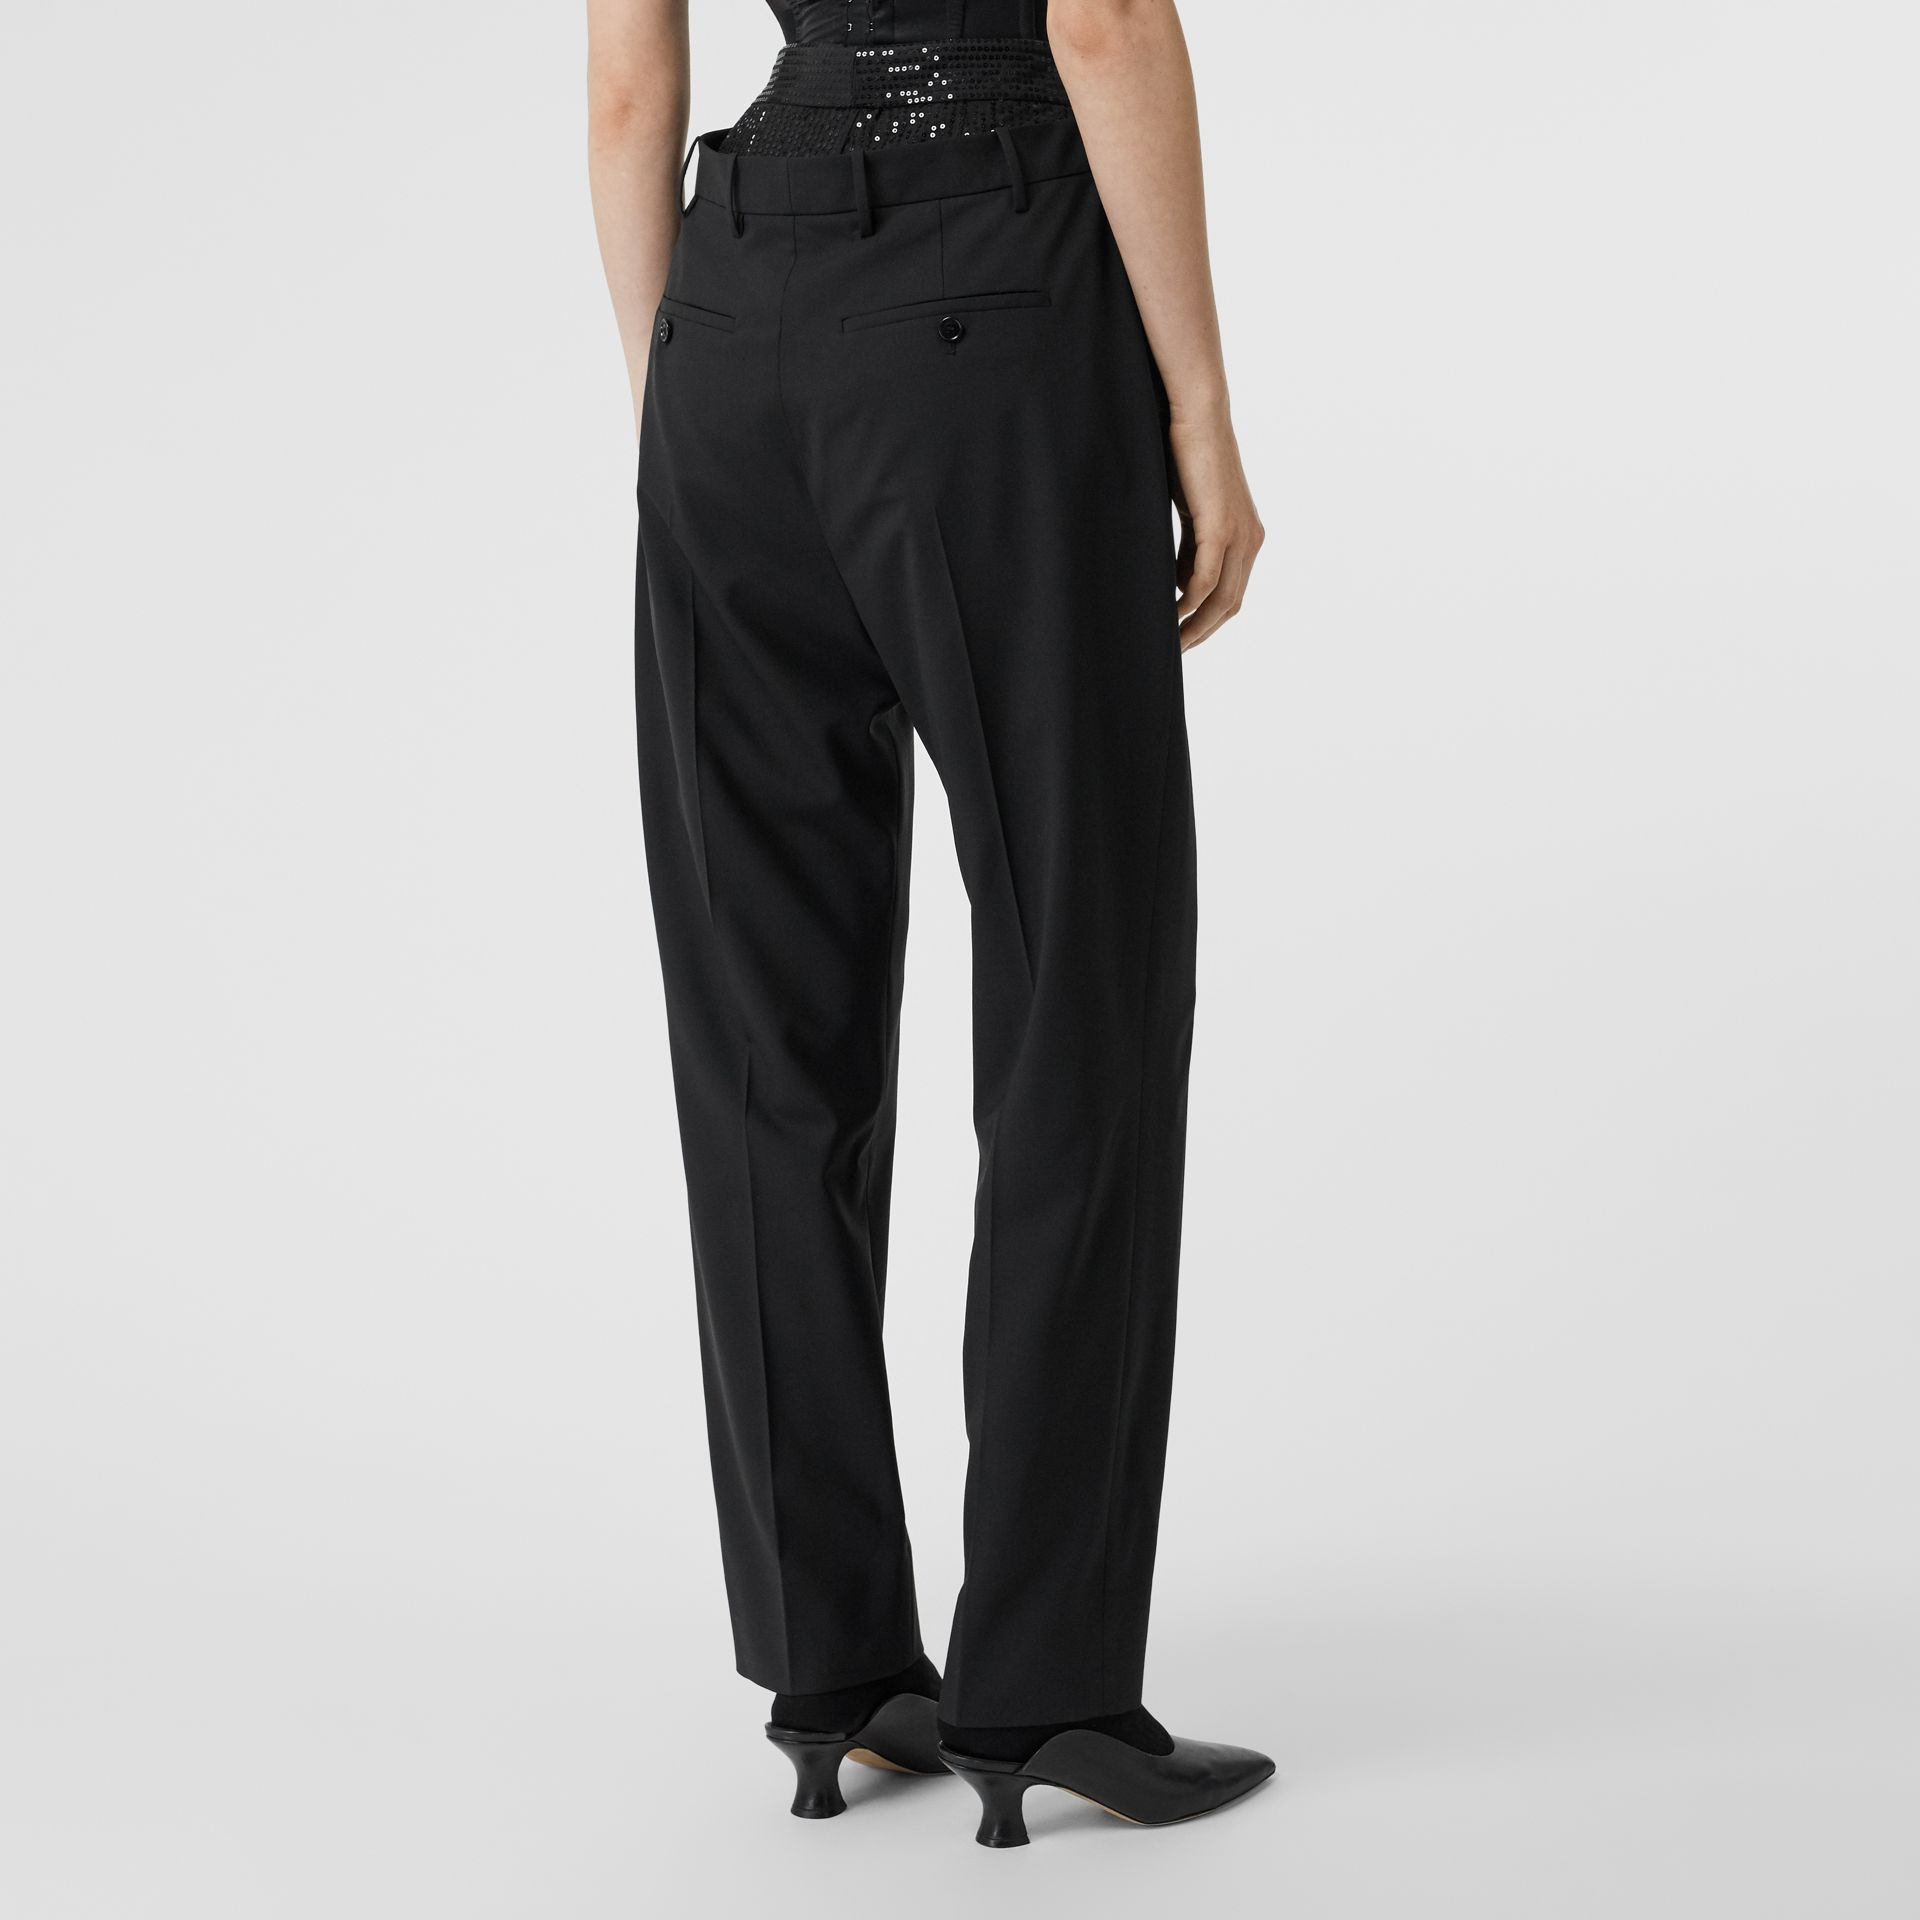 Pantalon en laine stretch à double ceinture avec sequins (Noir) - Femme | Burberry Canada - photo de la galerie 2